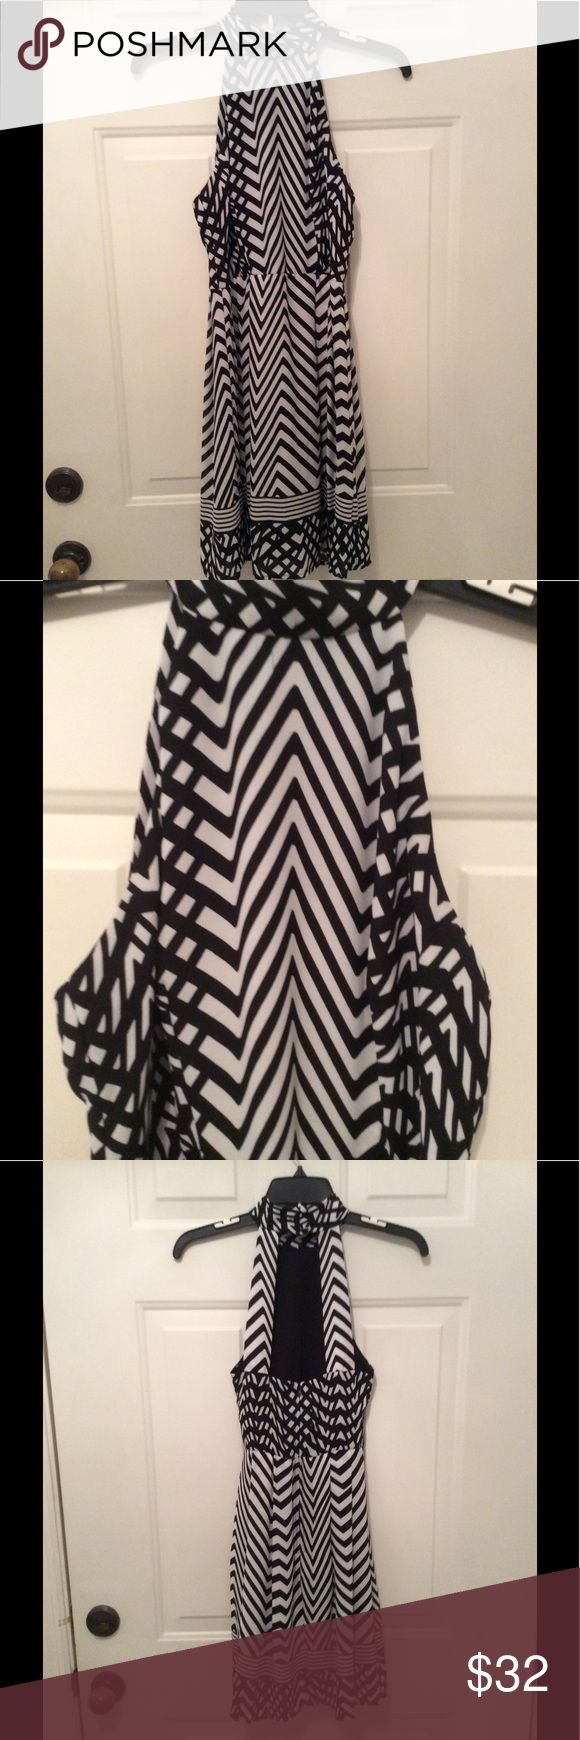 🌺B. SMART DRESS WITH BLACK AND WHITE DESIGN. 🌺 BEAUTIFUL DRESS IN LIKE NEW CONDITION. YOU WILL LOVE IT!  100% POLYESTER AND MACHINE WASHABLE. SEE FRONT AND BACK PICTURES. I LOVE THIS DRESS. B. SMART Dresses Mini